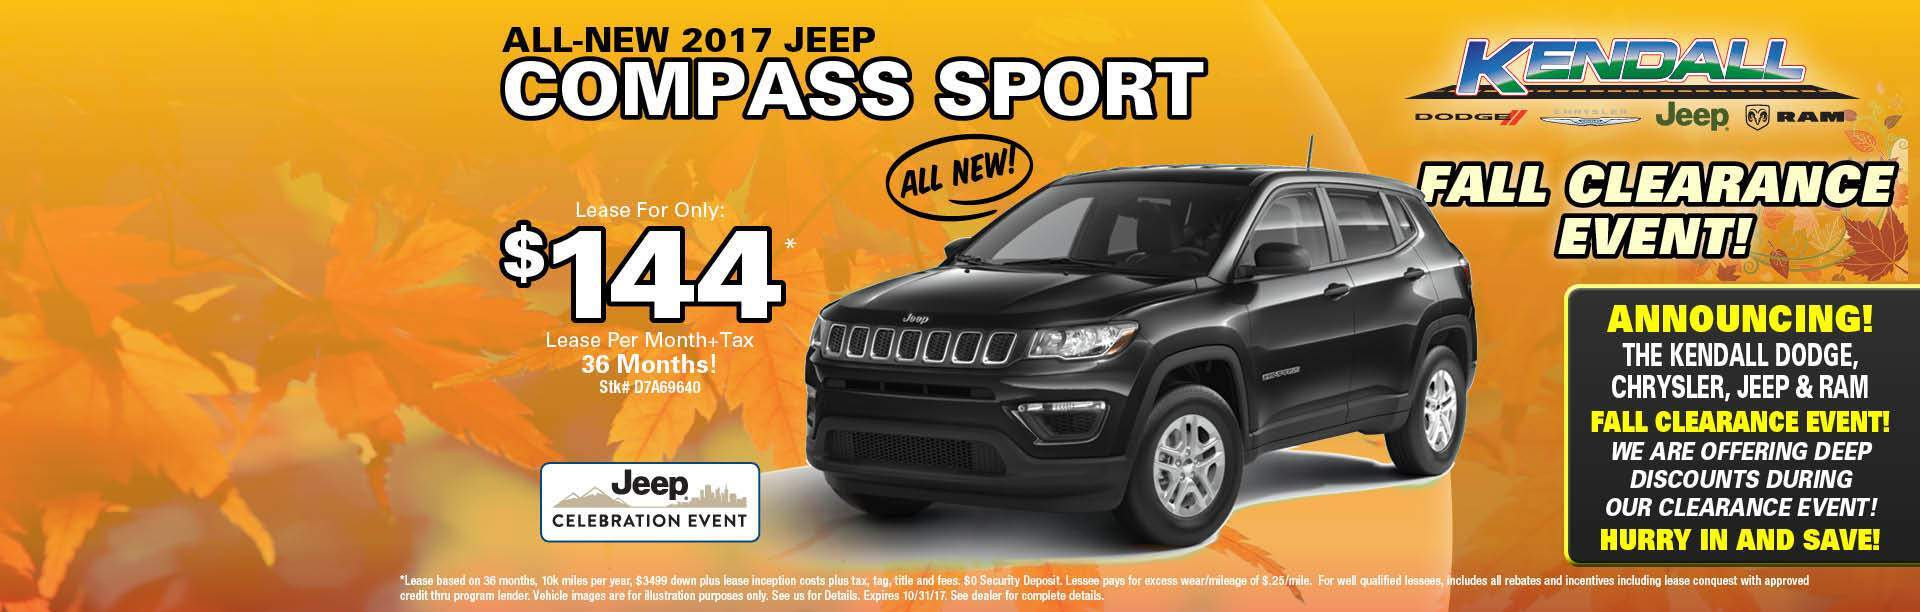 ALL NEW JEEP COMPASS